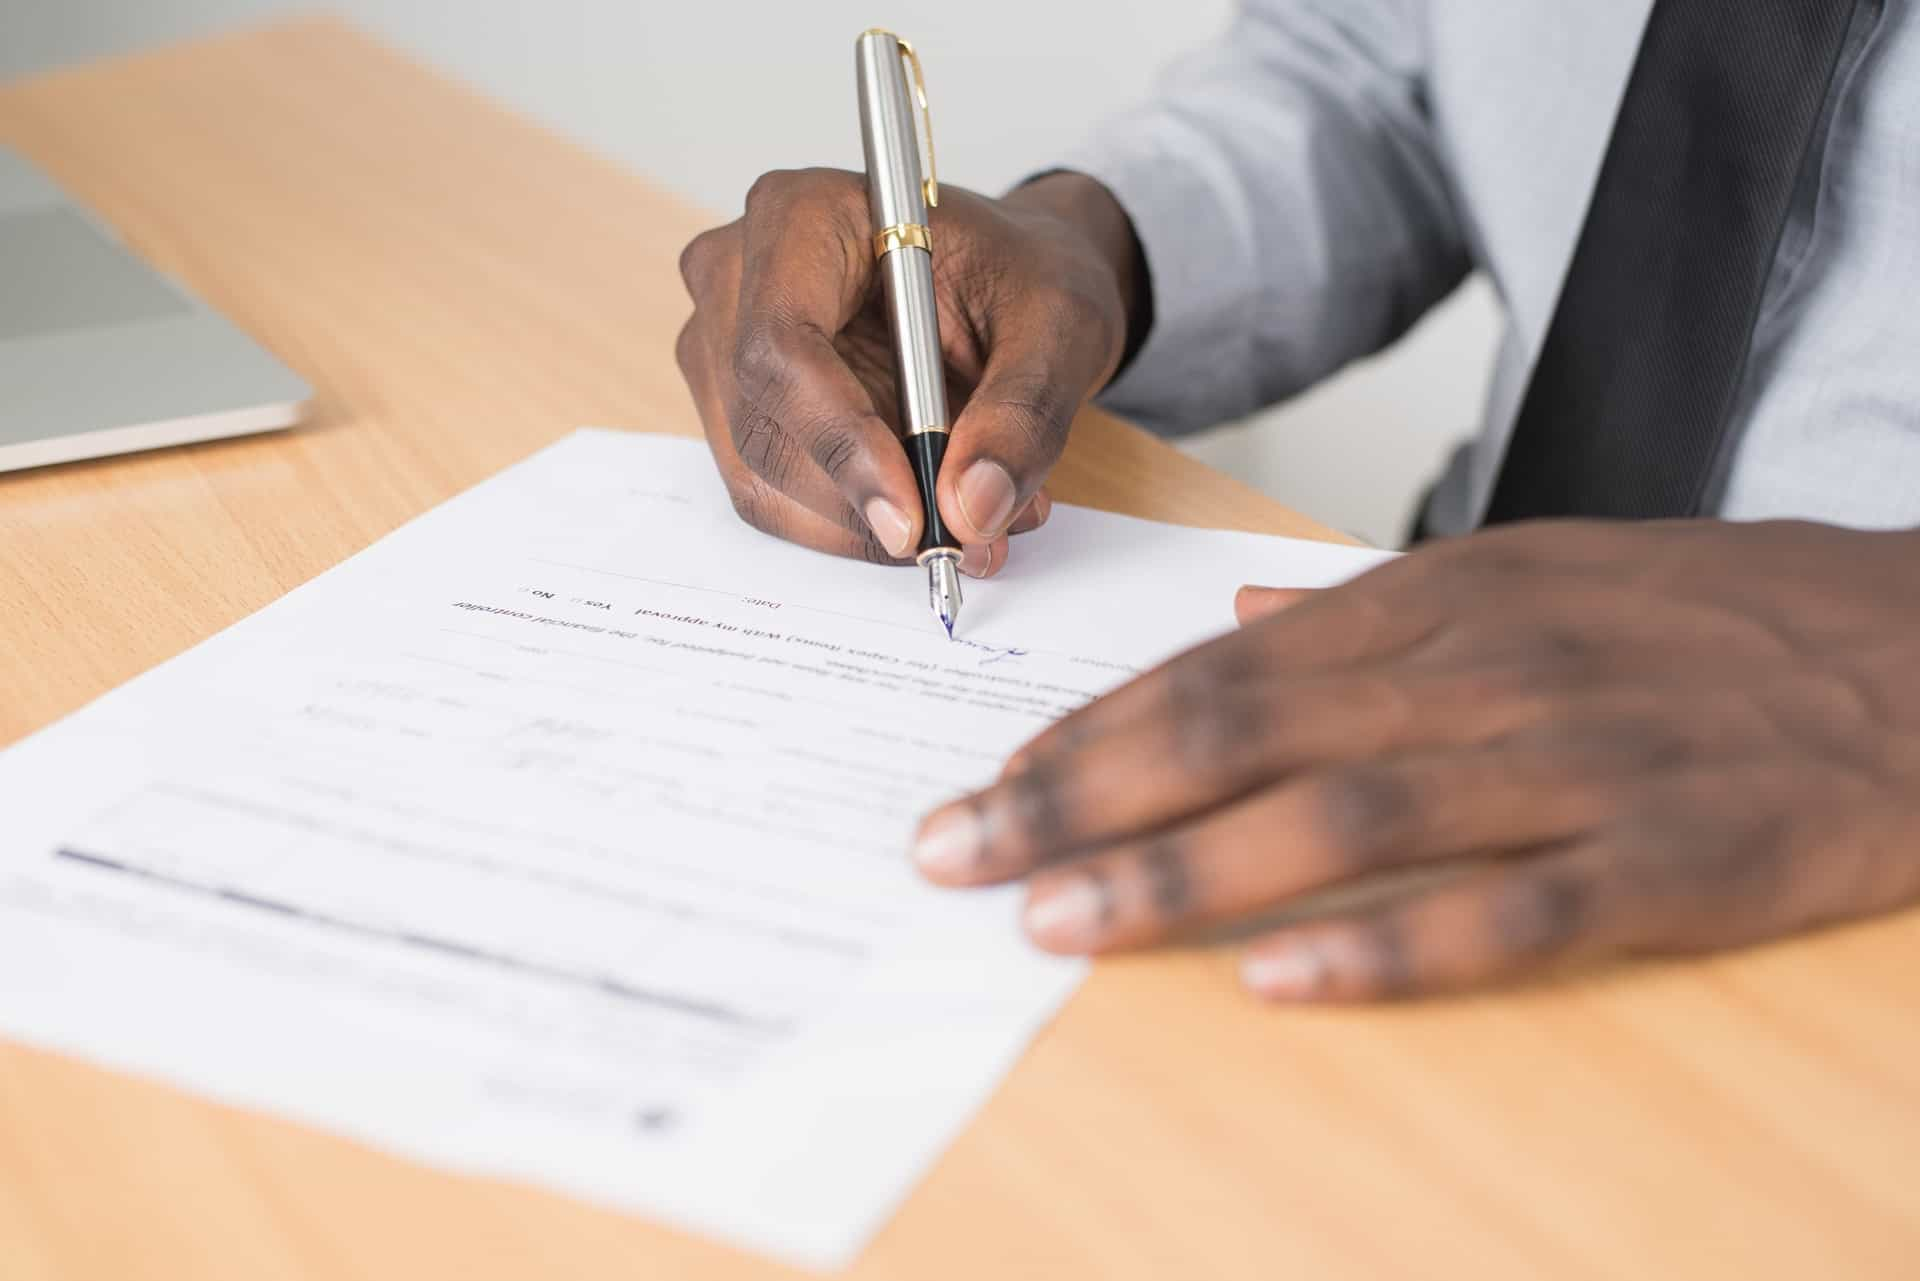 man filling out a form